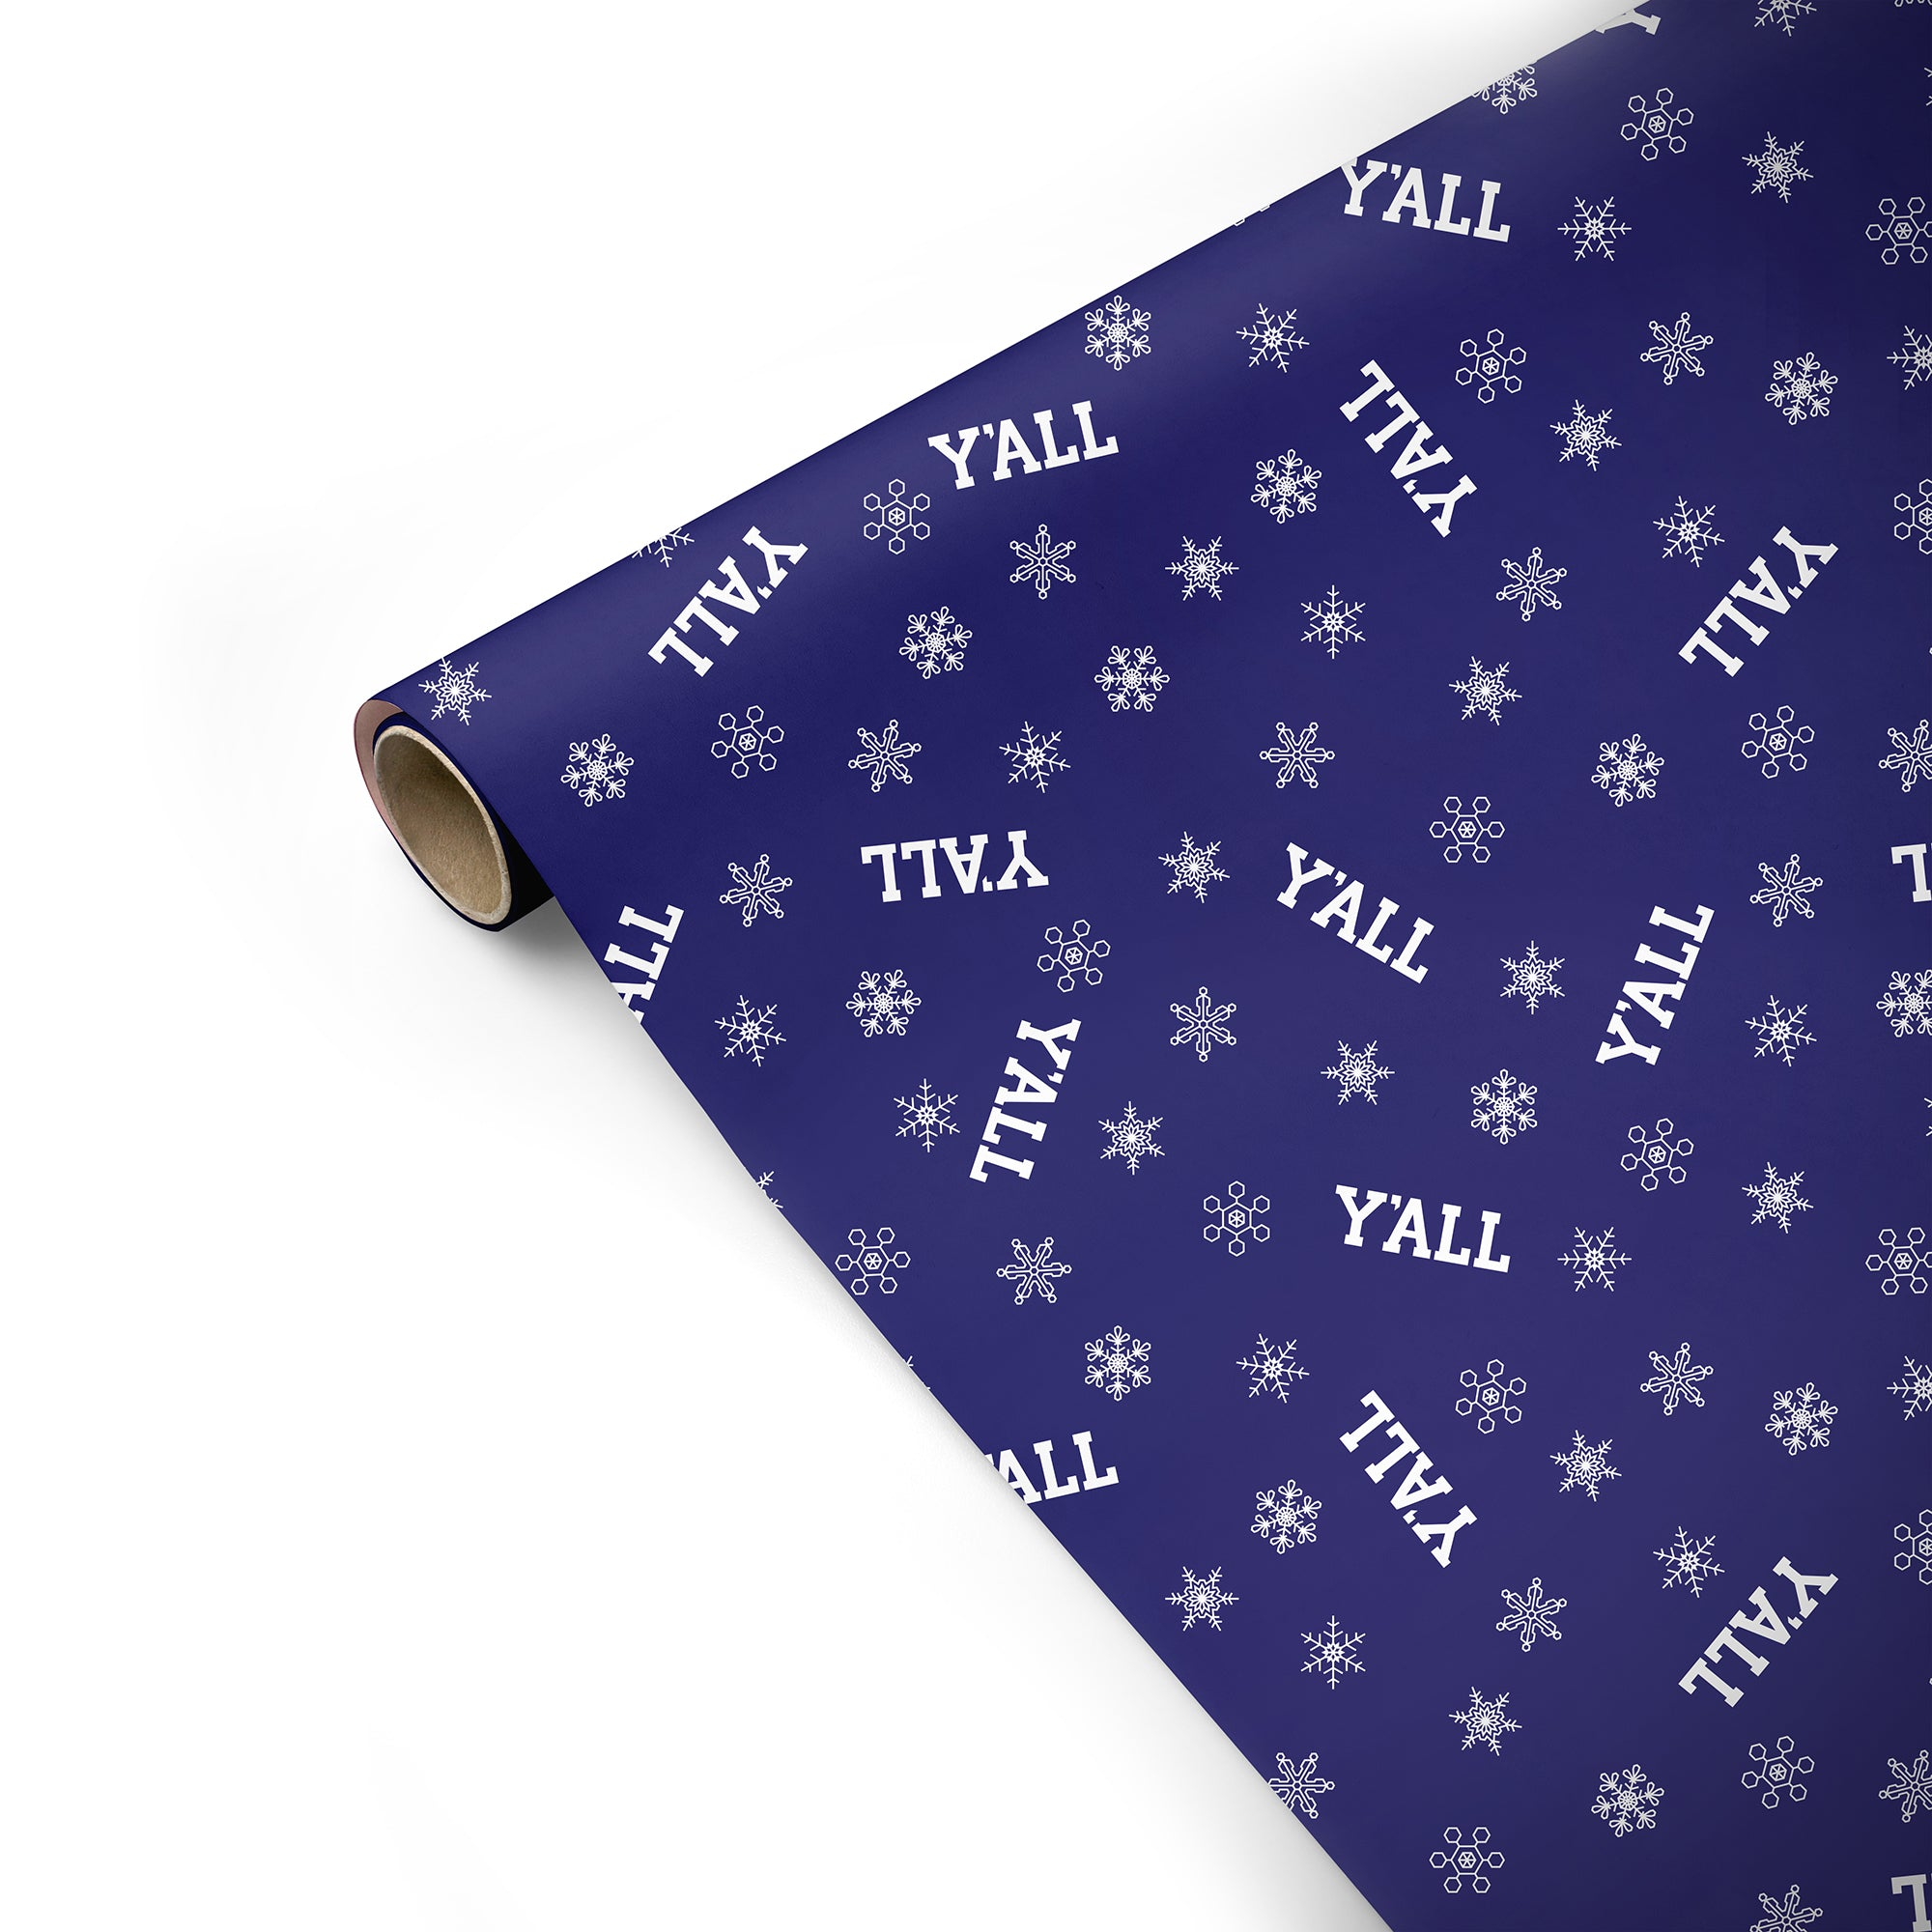 Y'ALL Wrapping Paper-Odds and Ends-KY for KY Store